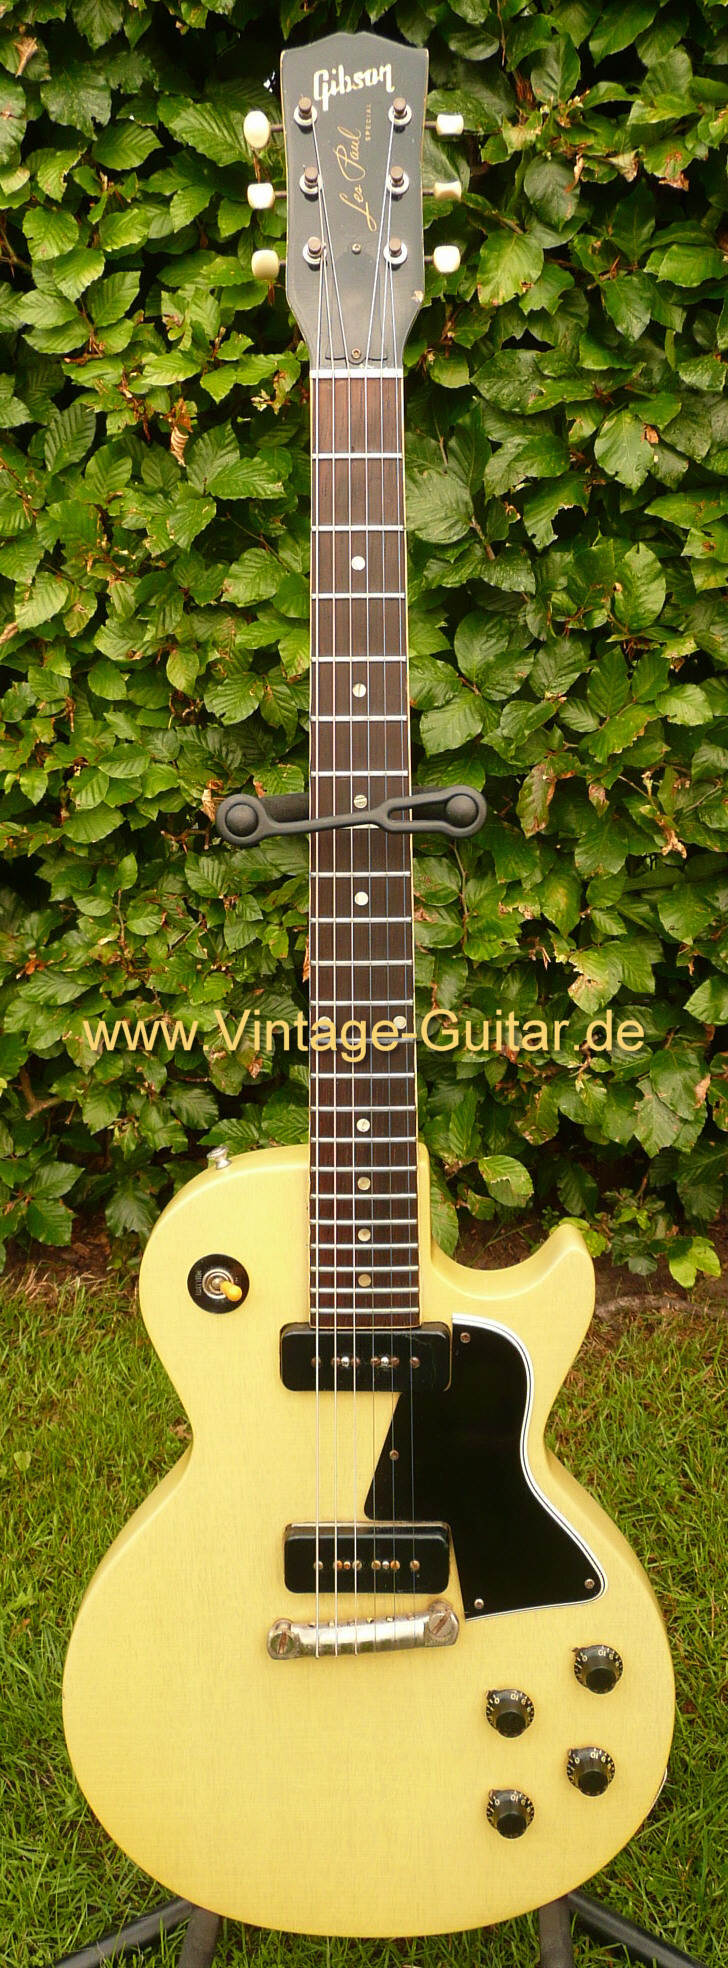 img/vintage/927/Gibson-Les-Paul-Special-1956-a.jpg